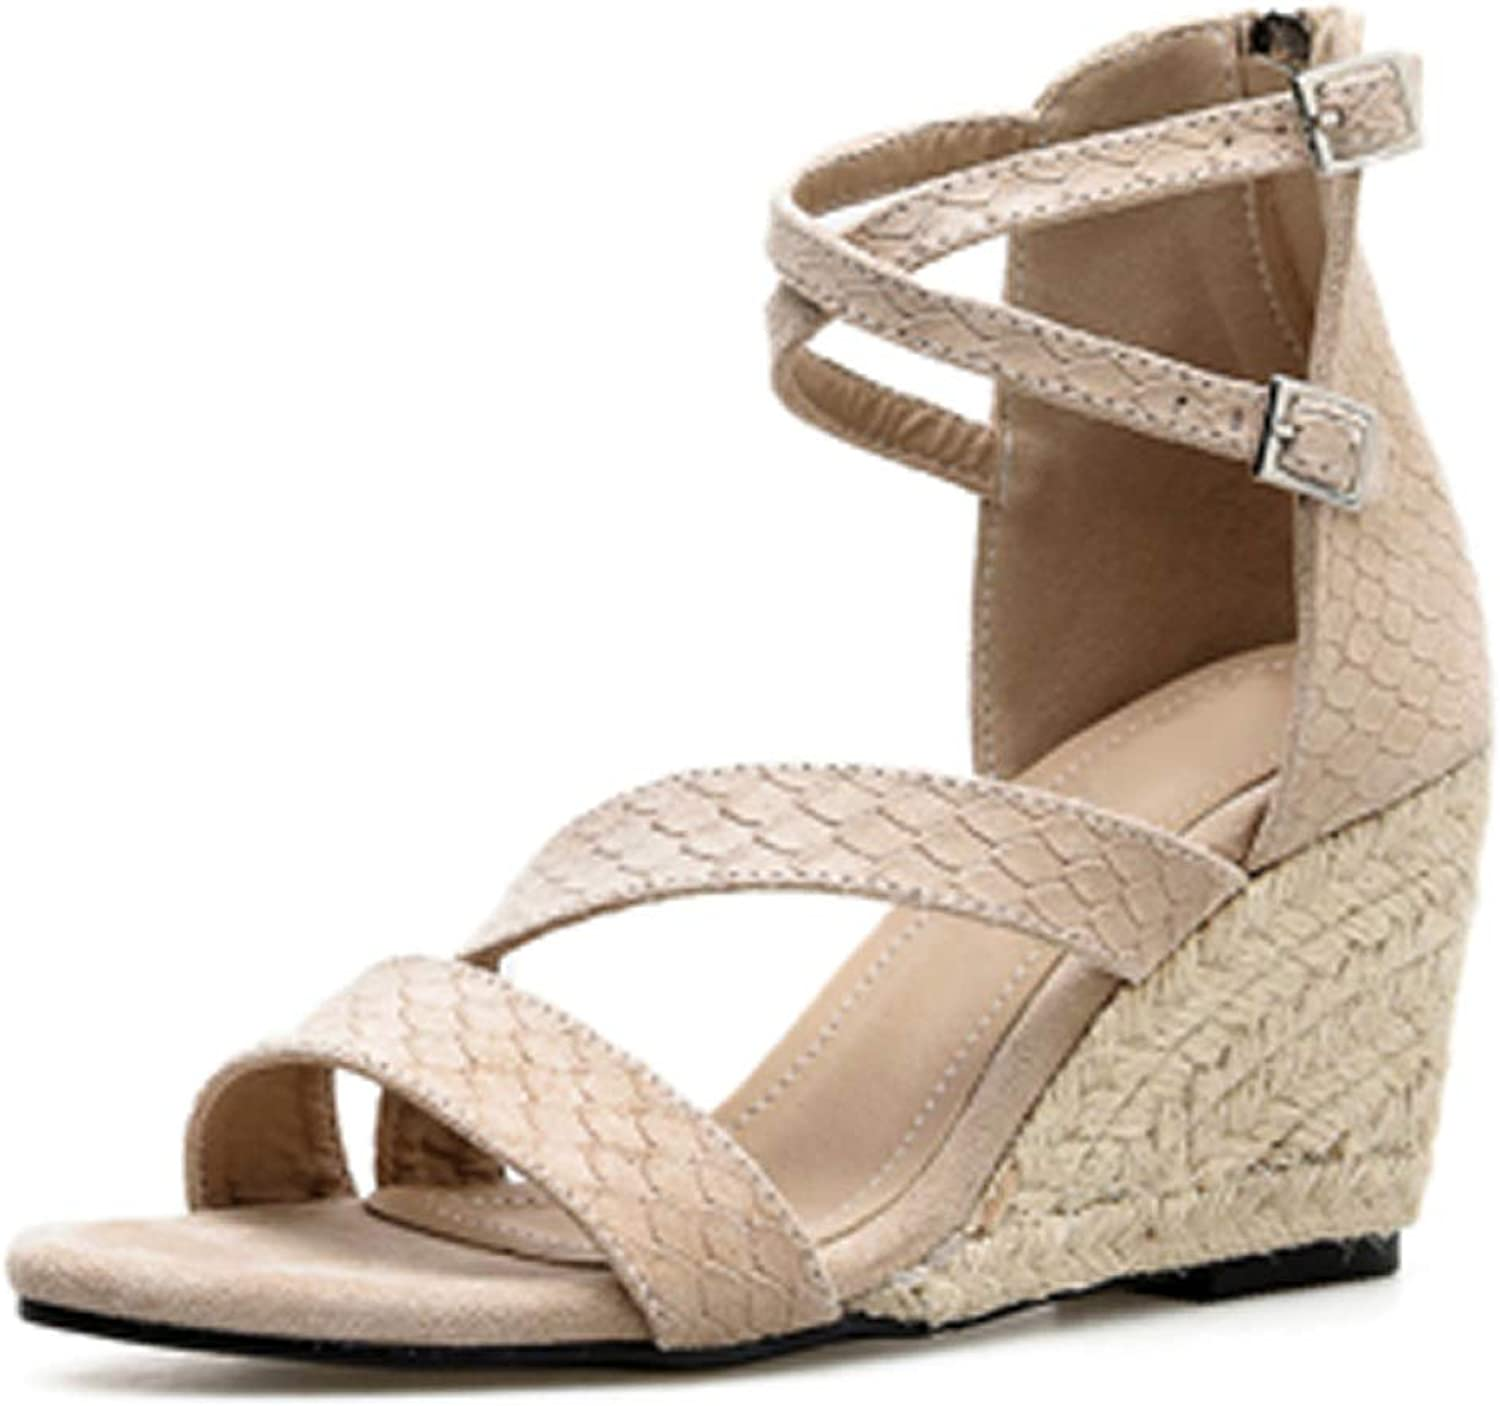 MEIZOKEN Women's Crisscross Strappy Espadrilles Comfort Non-Slip Ankle Strap Zipper Summer Gladiator Wedges Sandals